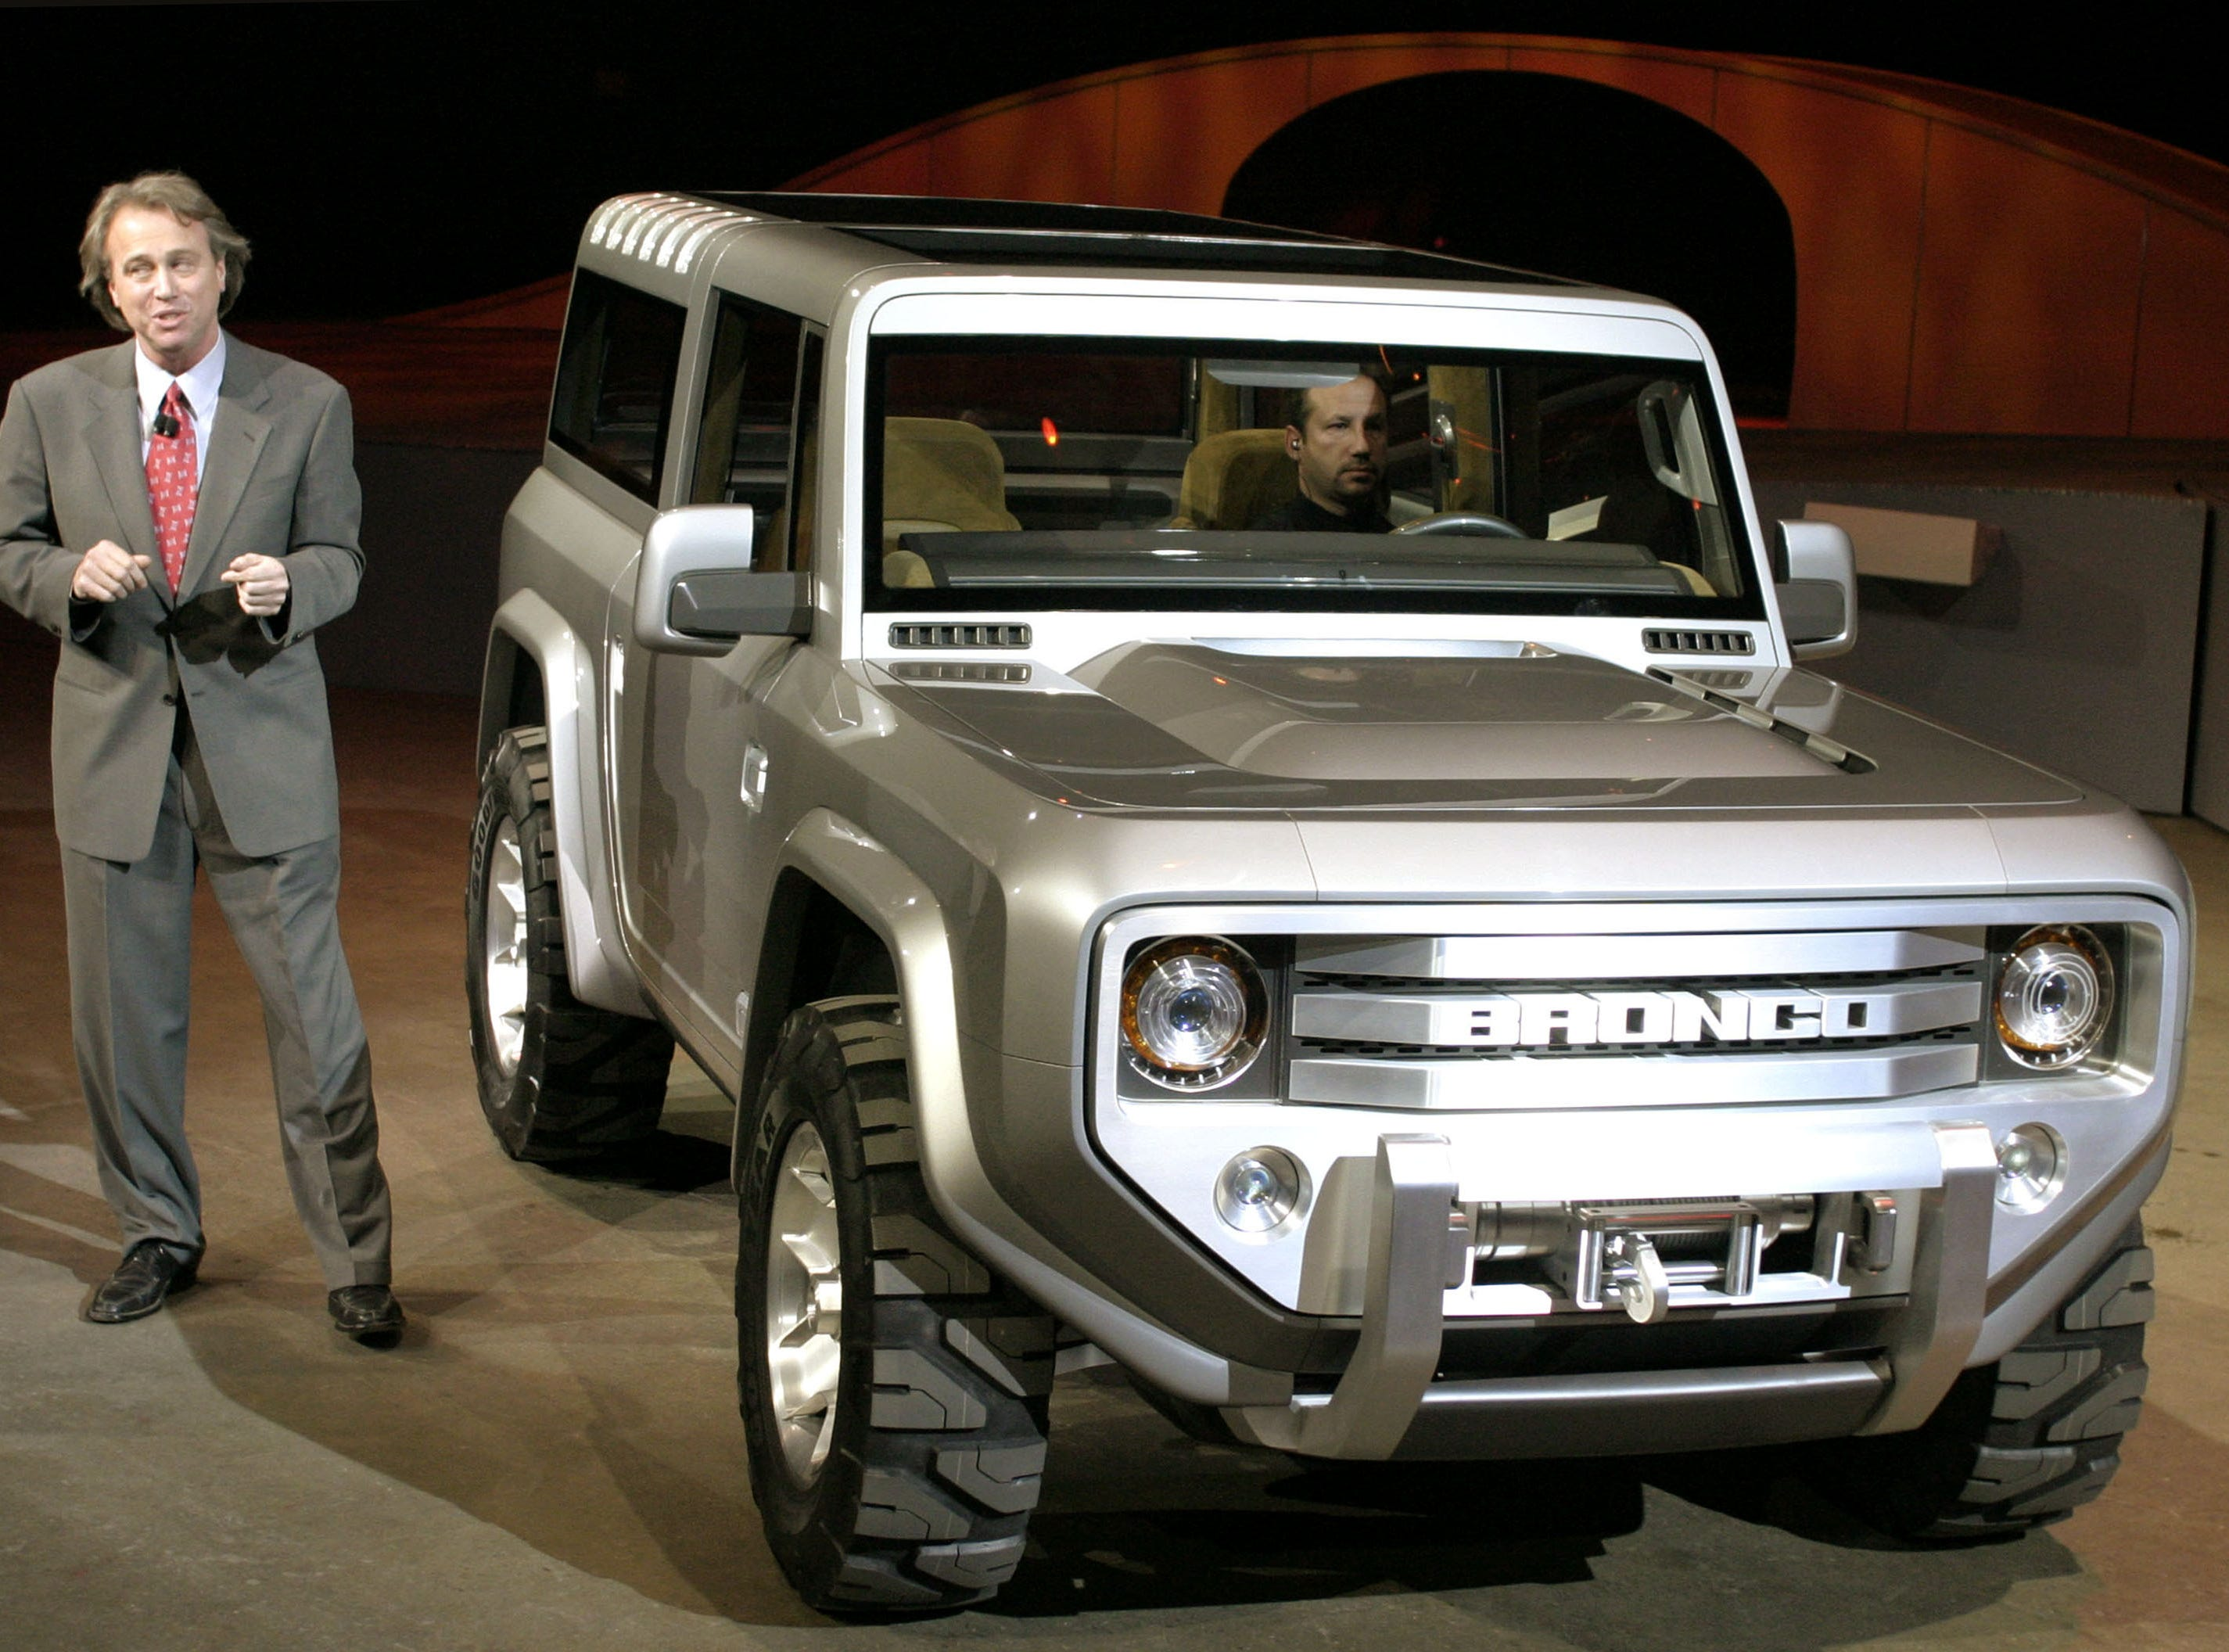 This is Ford Bronco concept vehicle introduced at the the North American International Auto Show Jan. 4, 2004.  The Ford Bronco SUV is heading to dealerships as a 2020 model, seeking to recapture the intensely loyal following it once had.